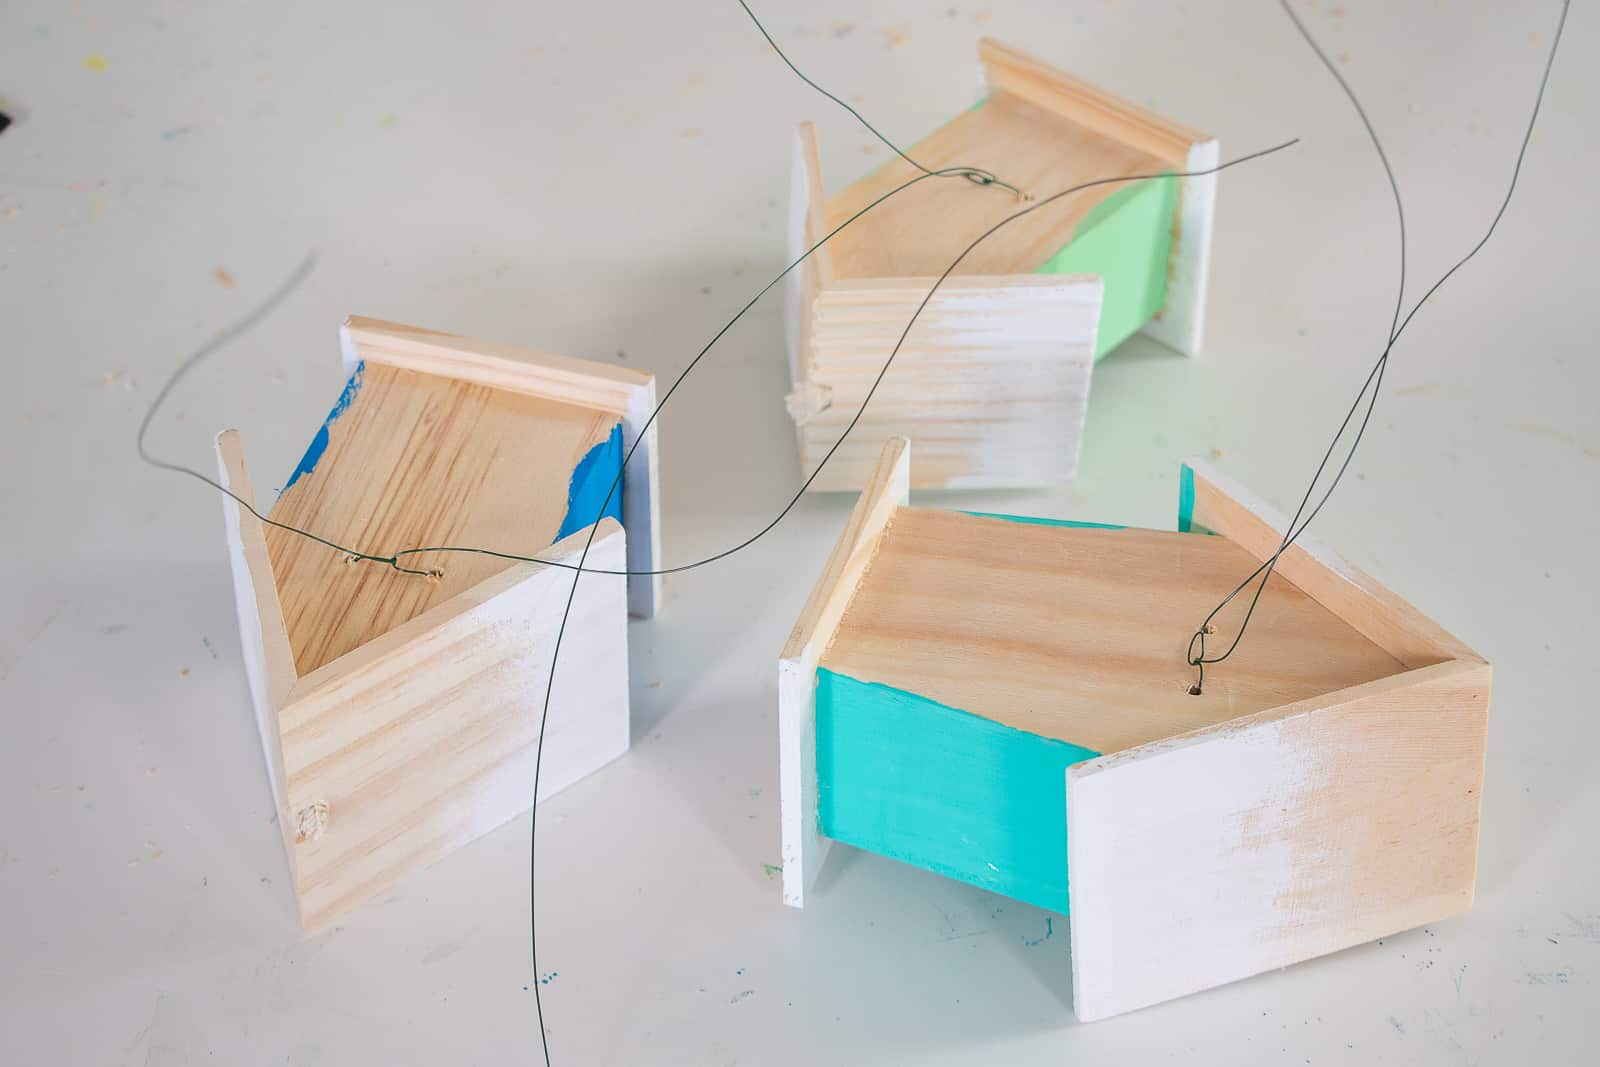 attach wire to the back of the wooden houses